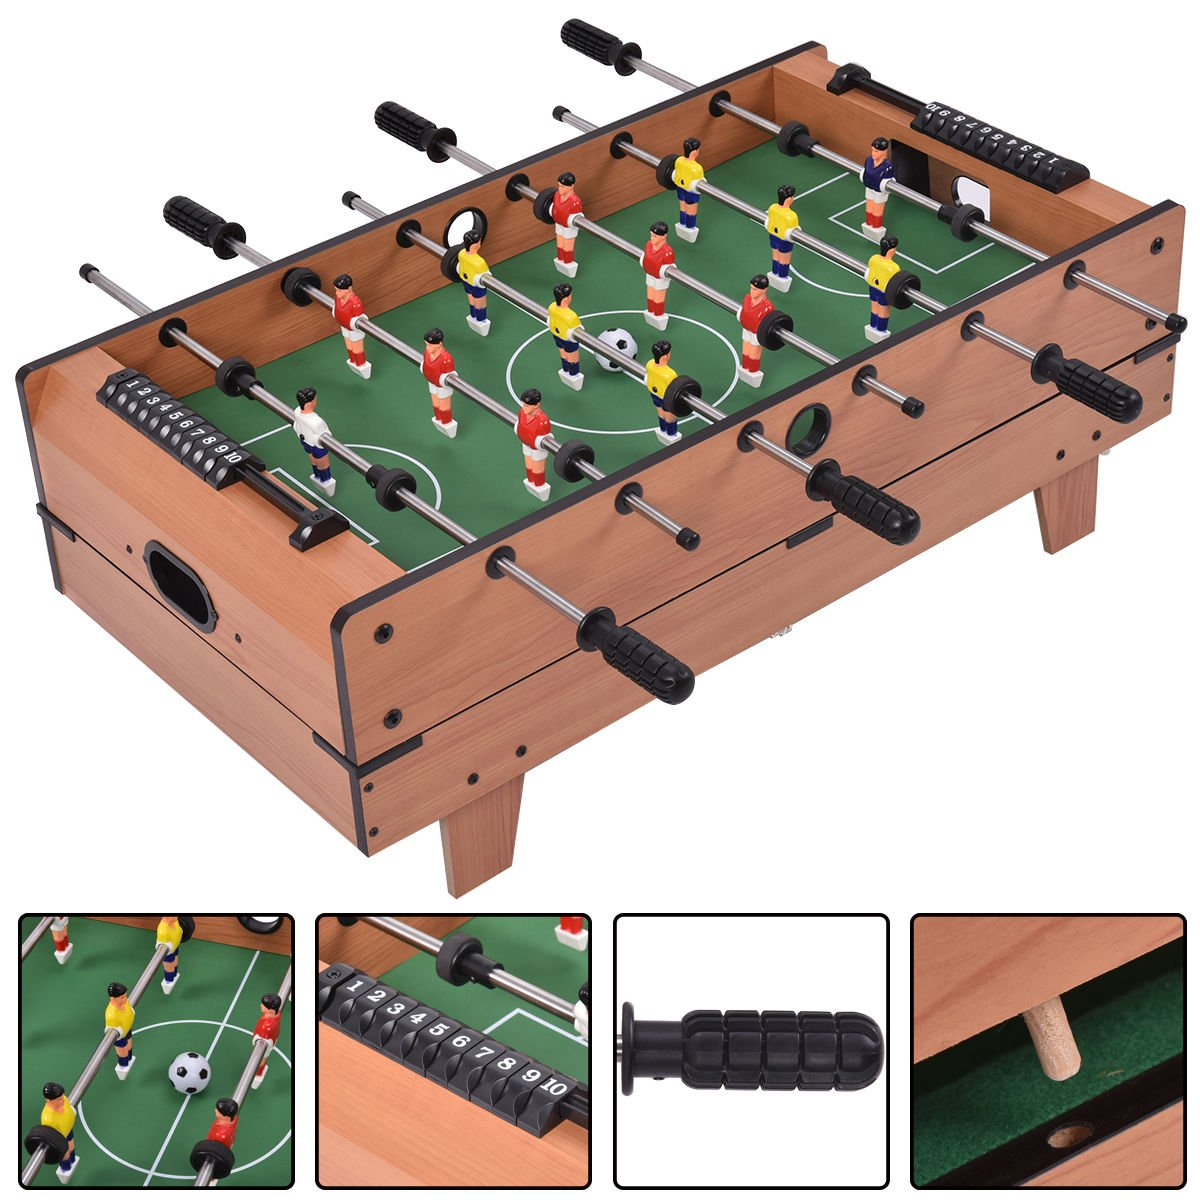 Amazon.com : 4 In 1 Multi Combo Foosball Soccer Table Family Sport Game Air  Hockey Tennis Football Pool : Sports U0026 Outdoors